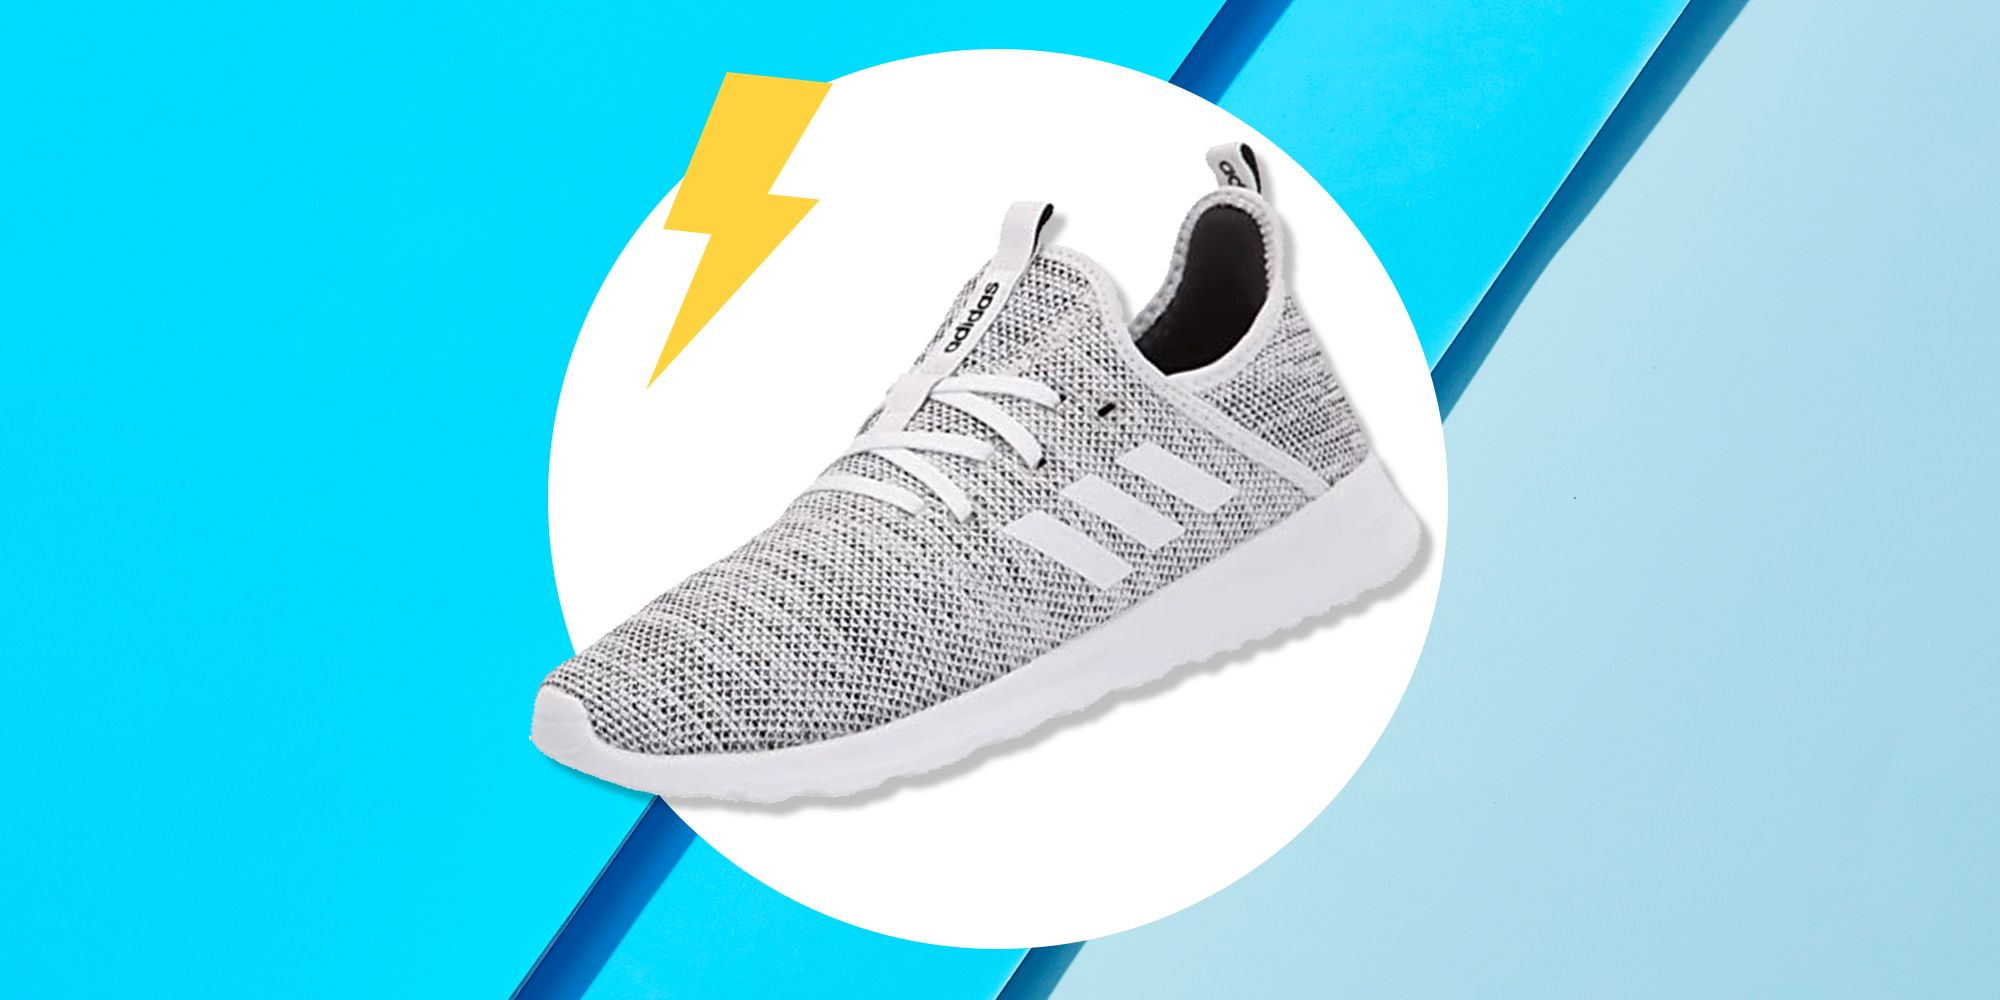 Adidas Cloudfoam Pure Running Shoes On Sale On Amazon